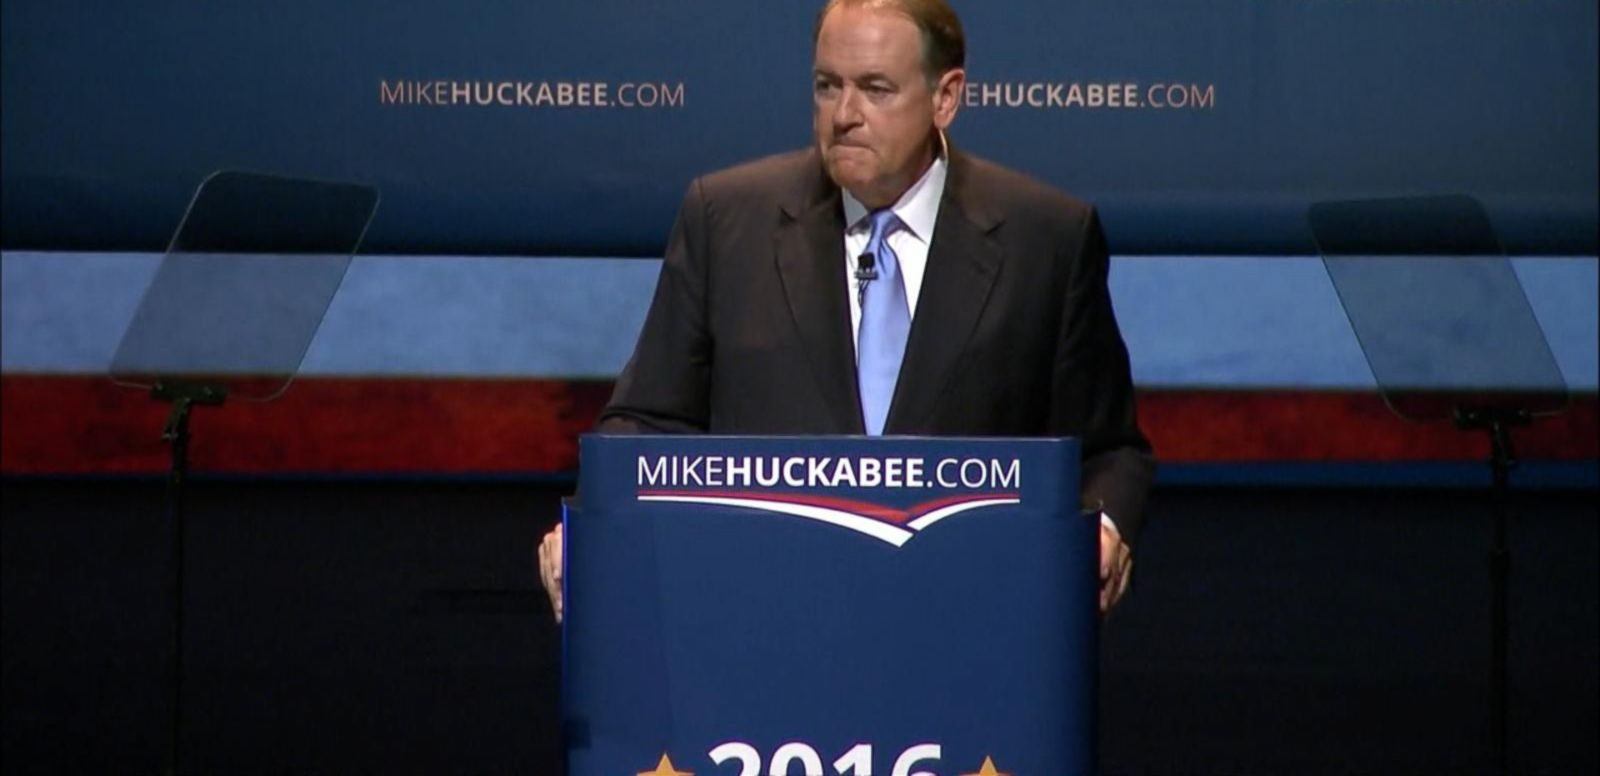 VIDEO: Watch Mike Huckabee Announce His 2016 Presidential Campaign